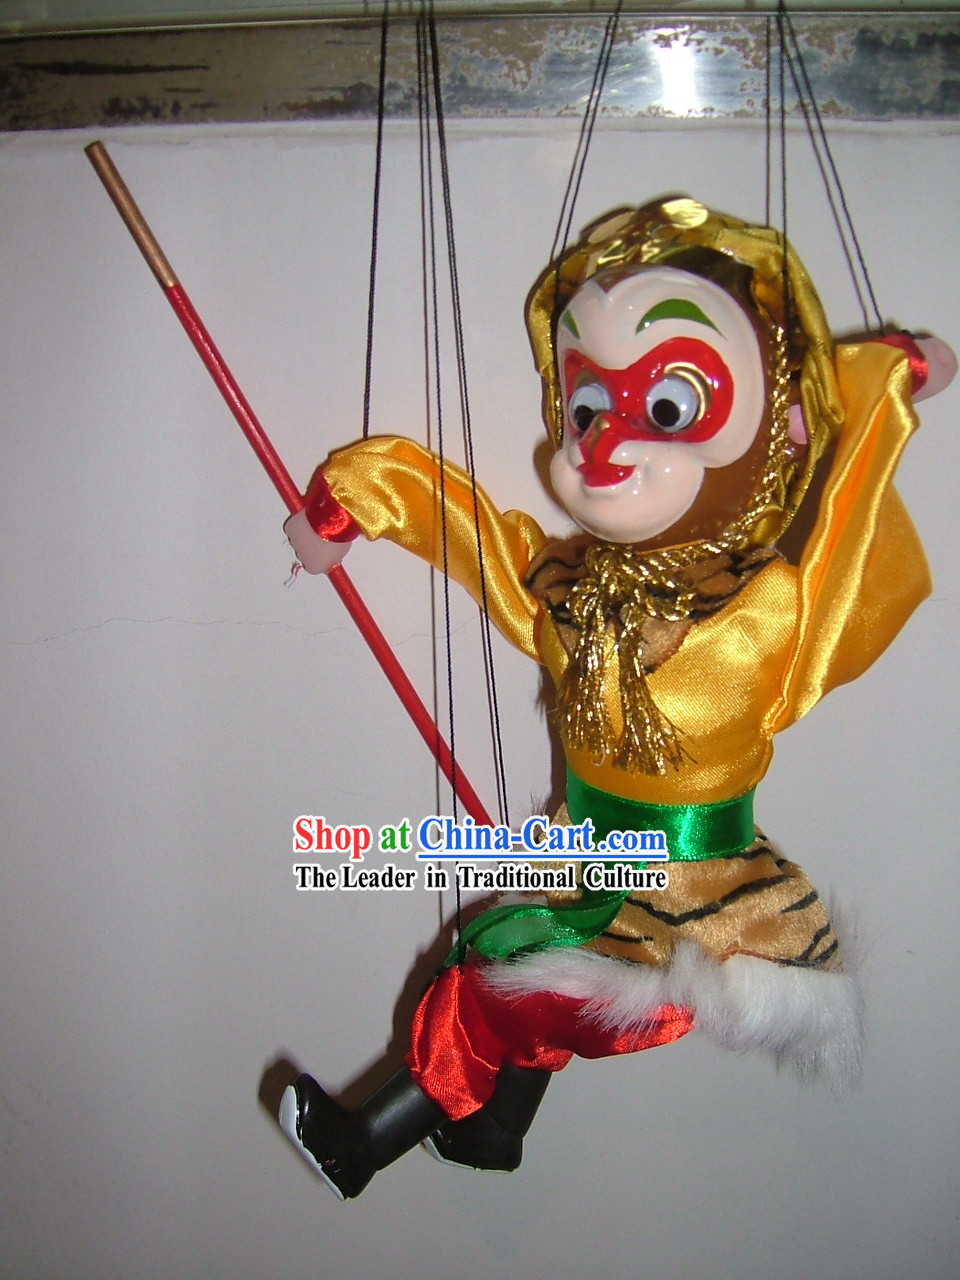 Chinese Monkey King Doll / Monkey Puppet